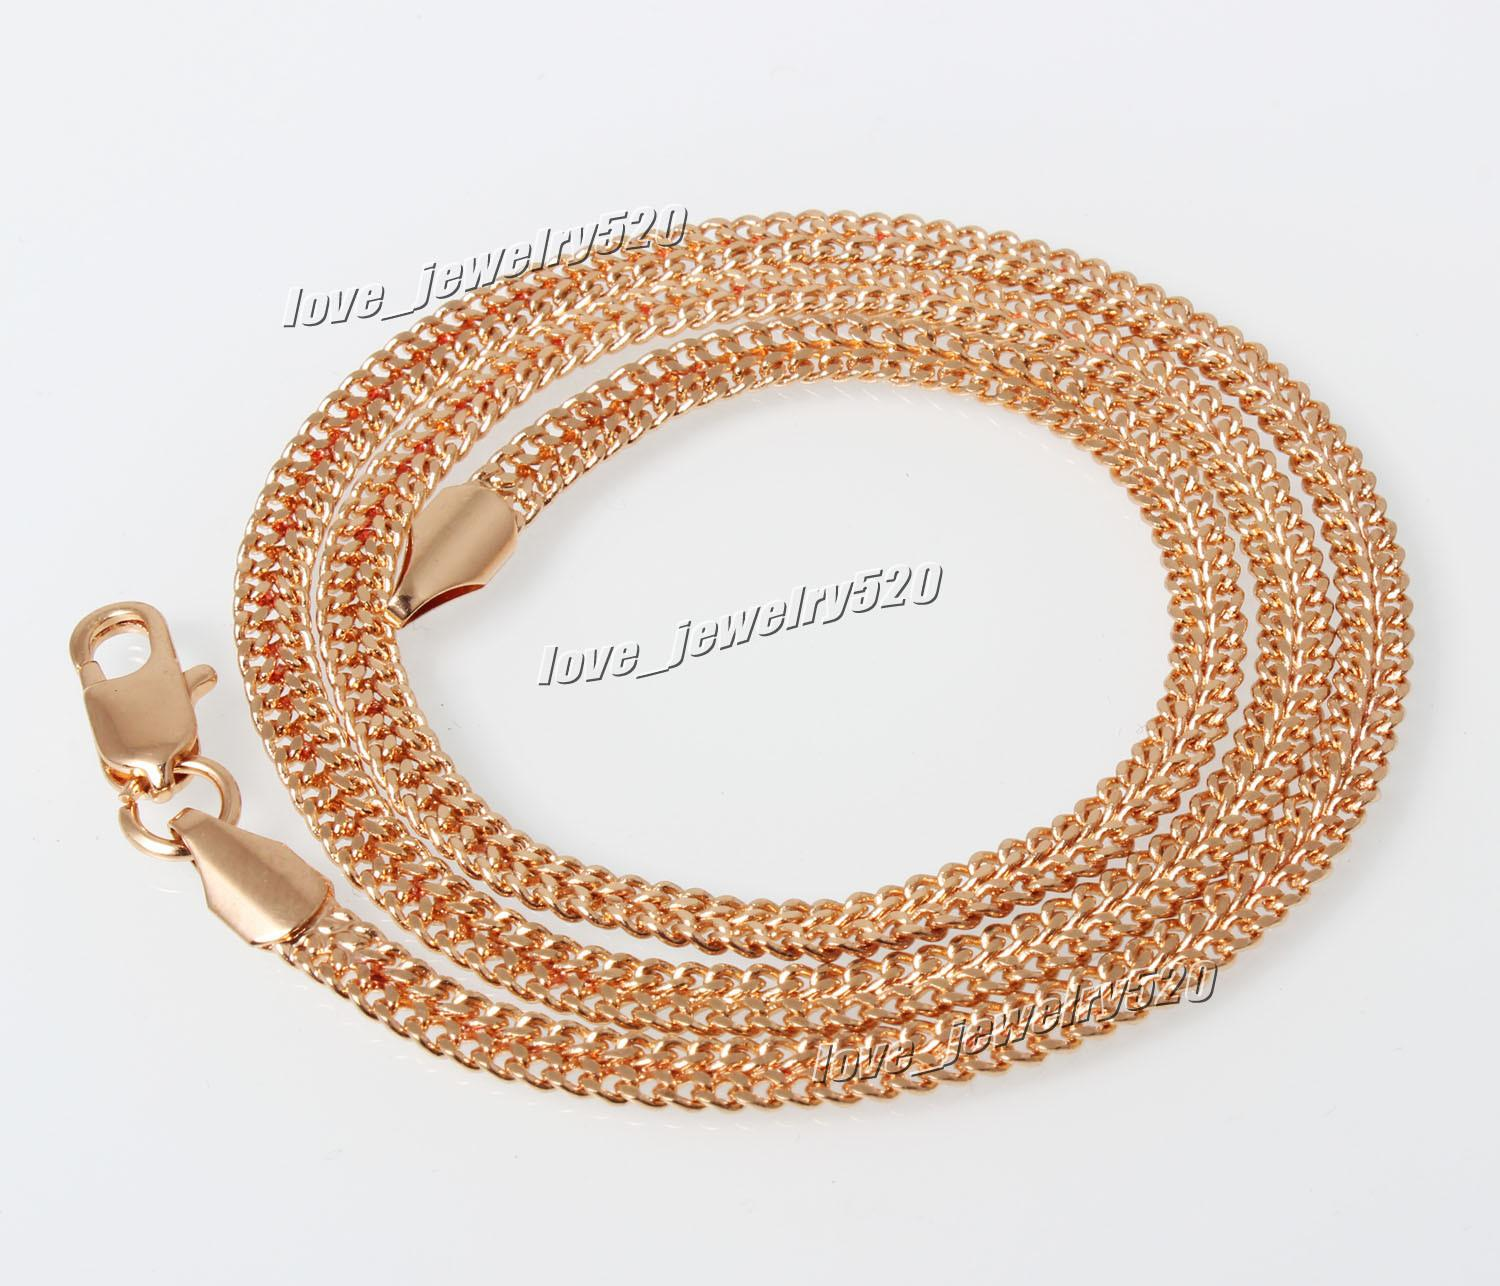 Hot Fashion Exquisite 18k Genuine Jewelry Gold Filled